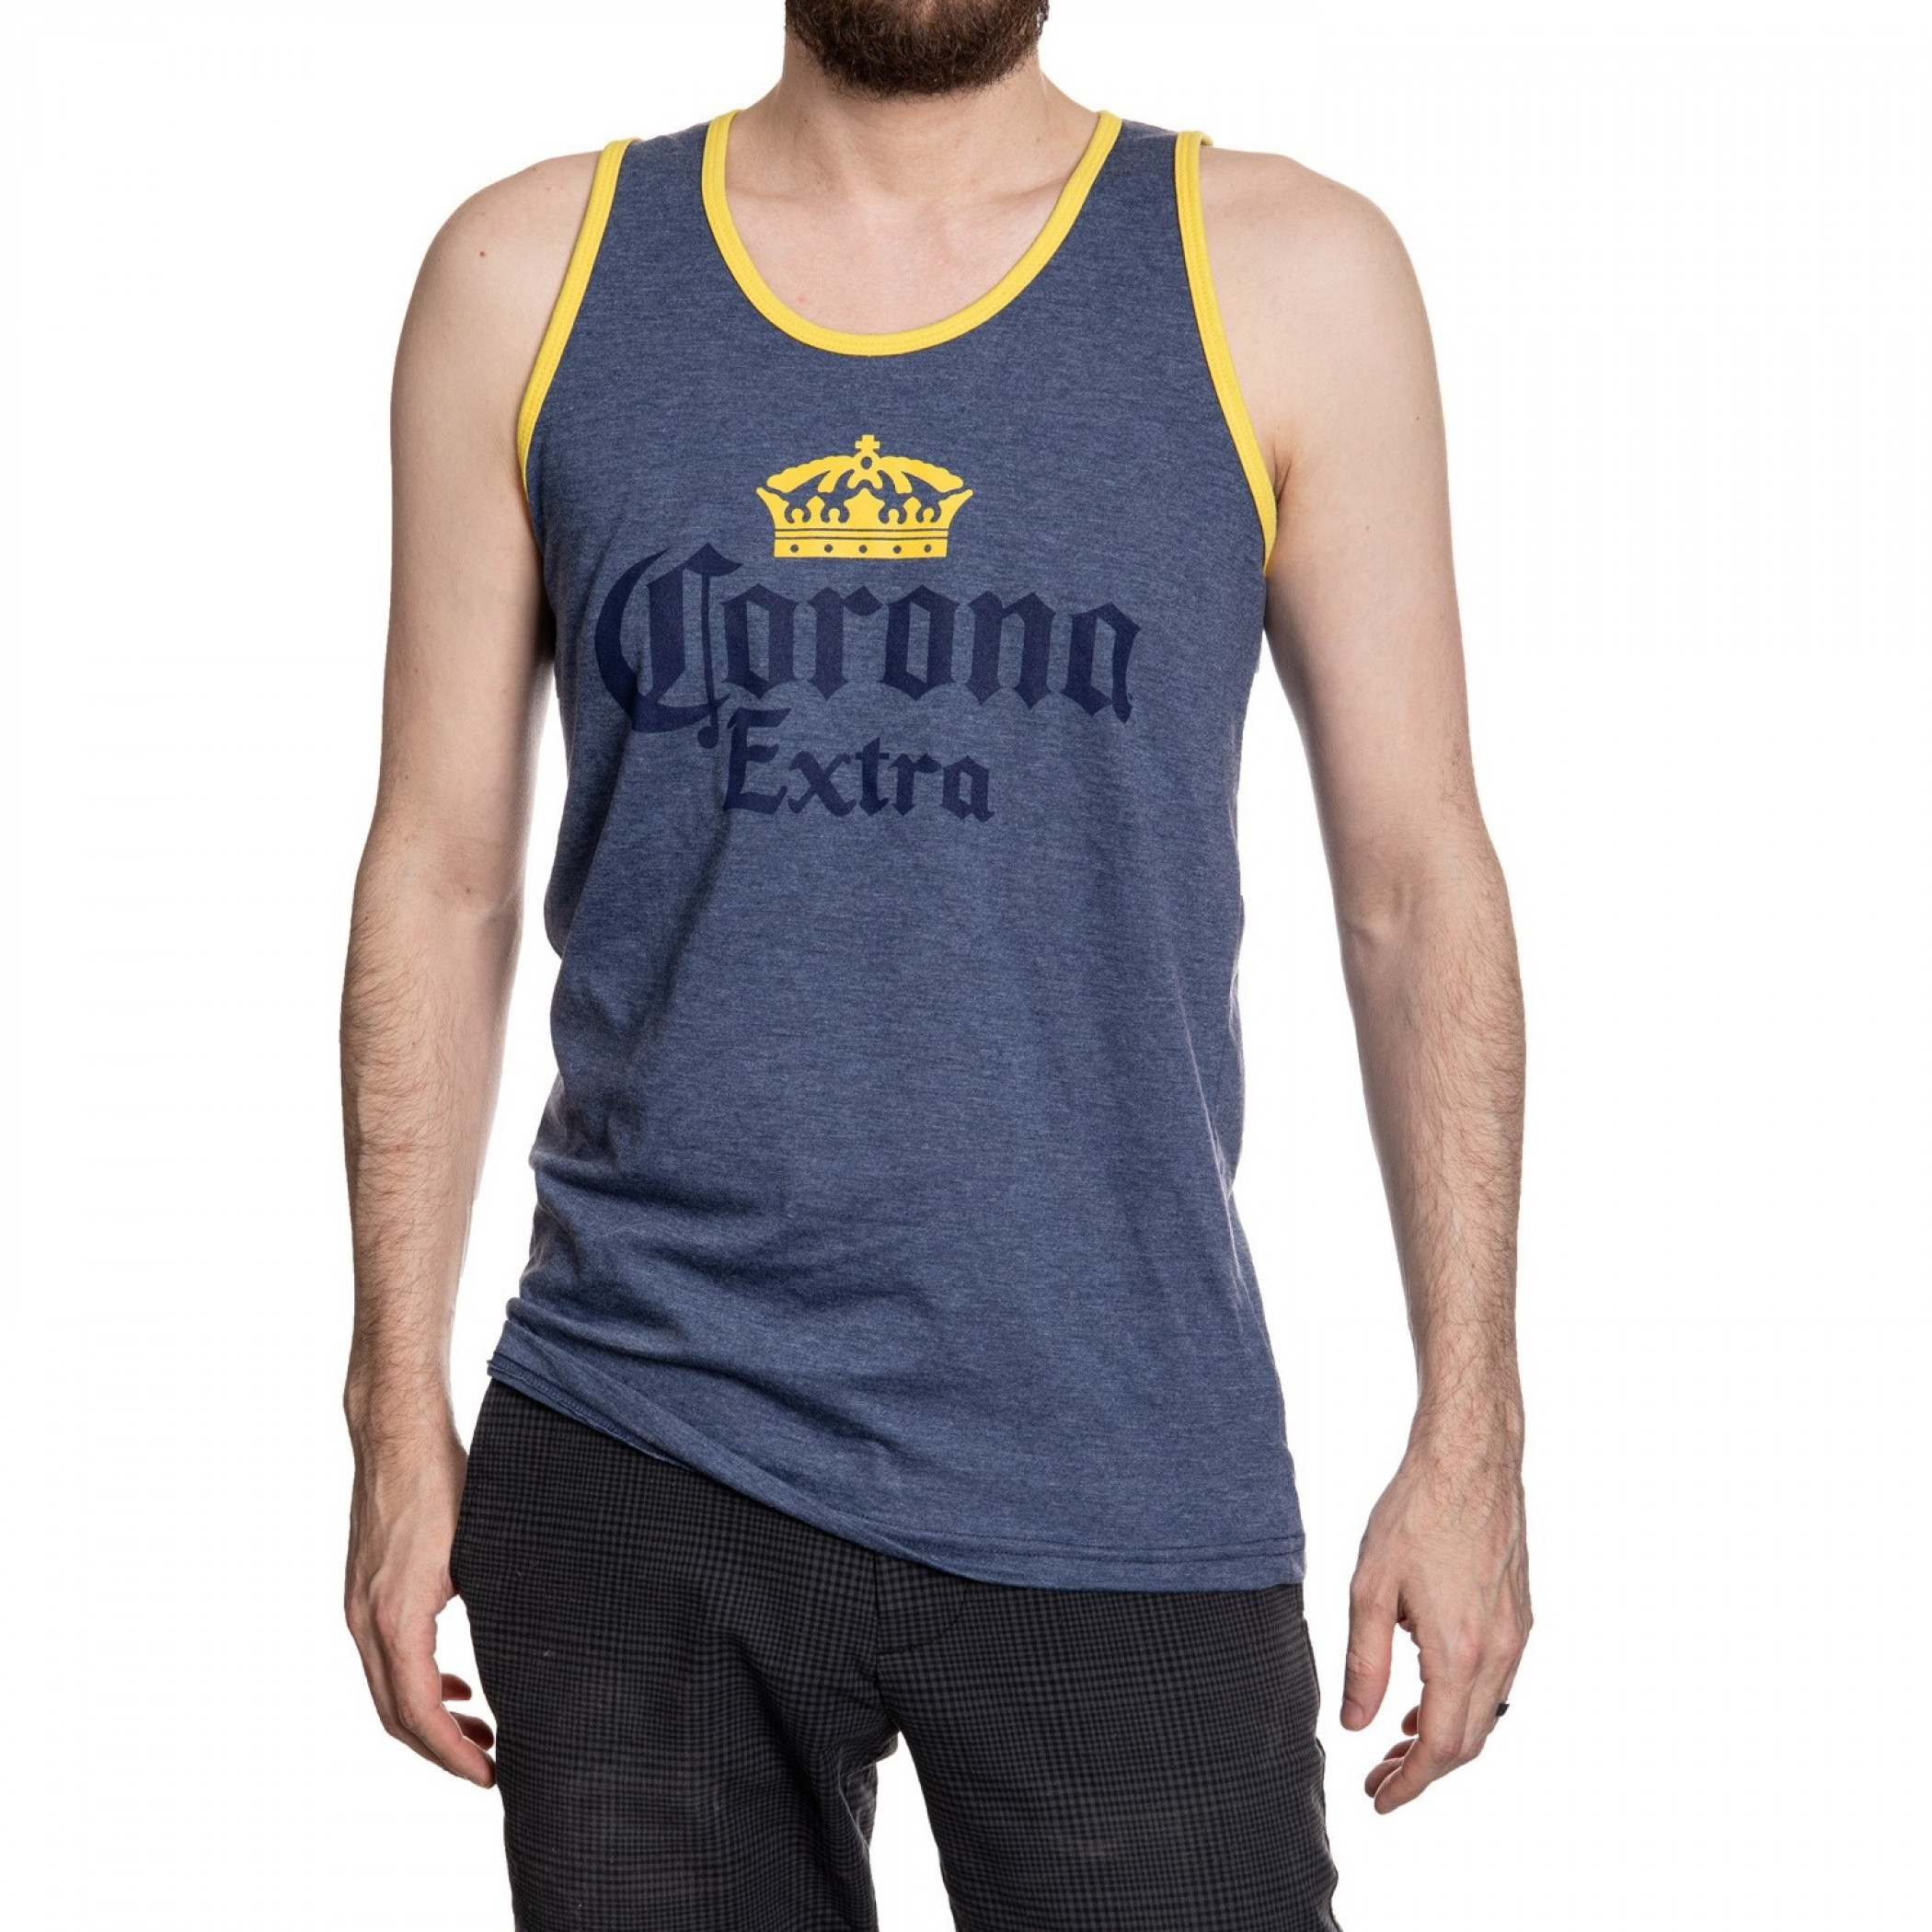 Corona Extra Faded Blue Tank Top